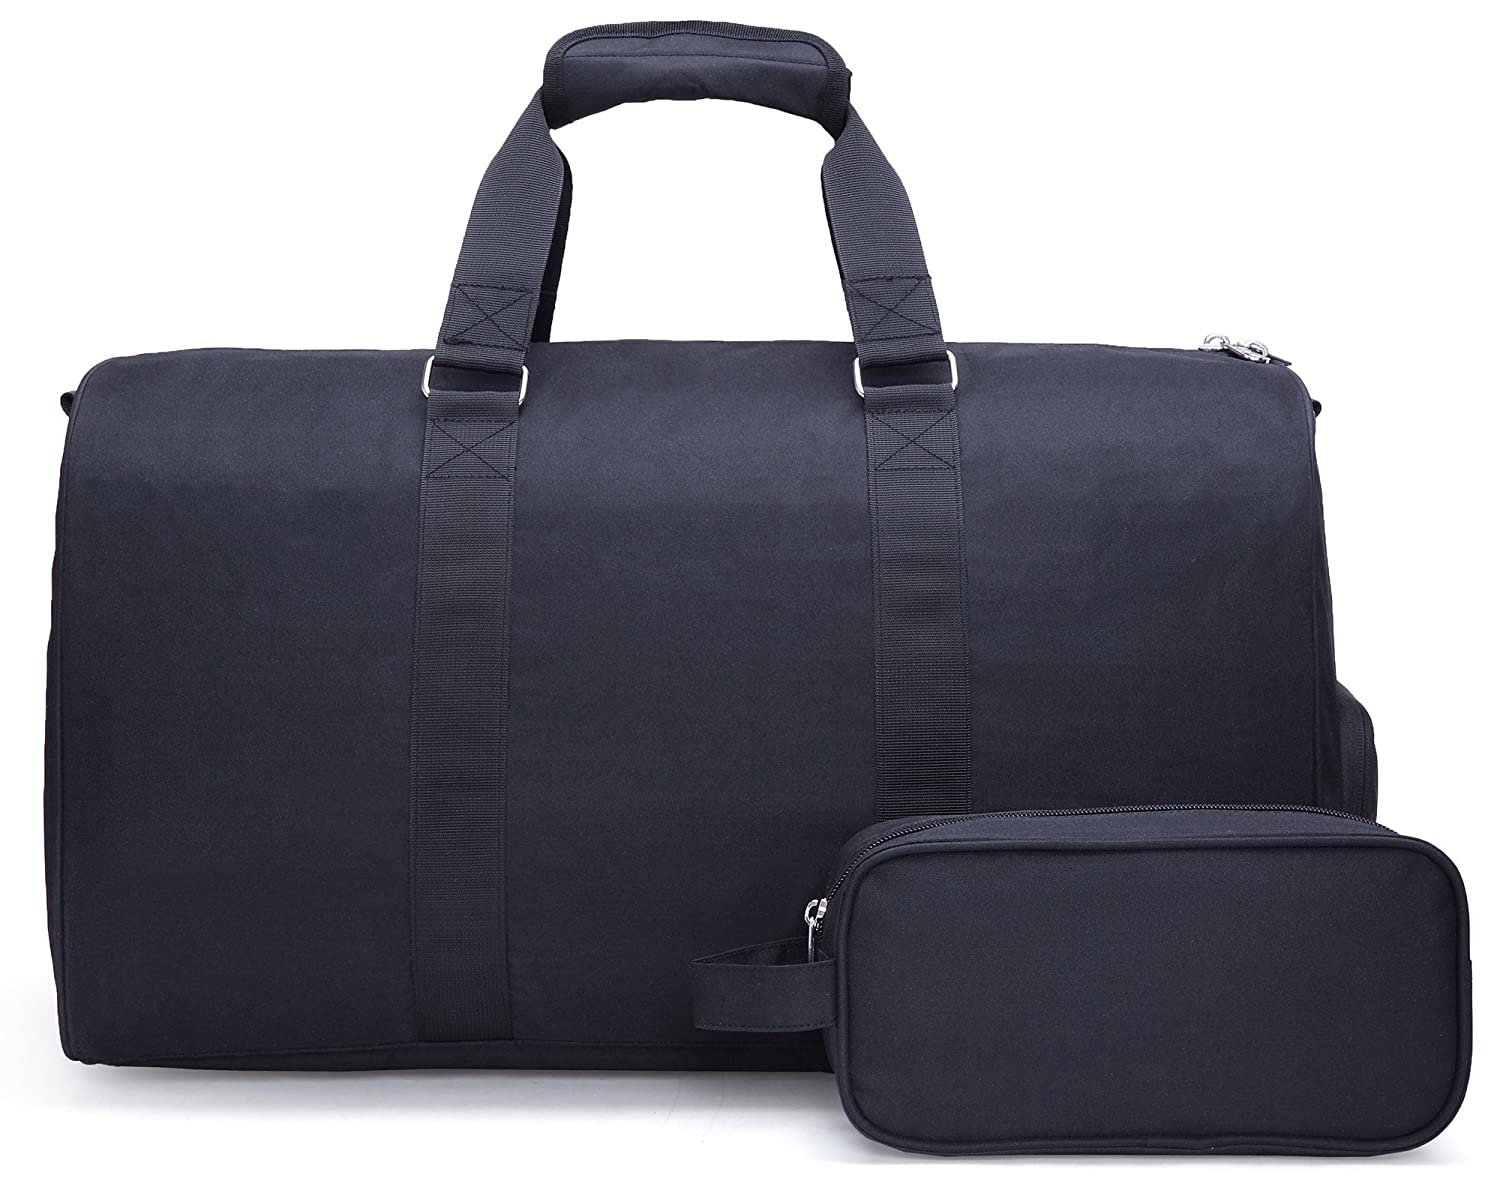 MIER Gym Duffel Bag for Men and Women with Shoe Compartment c08f2d0e40140